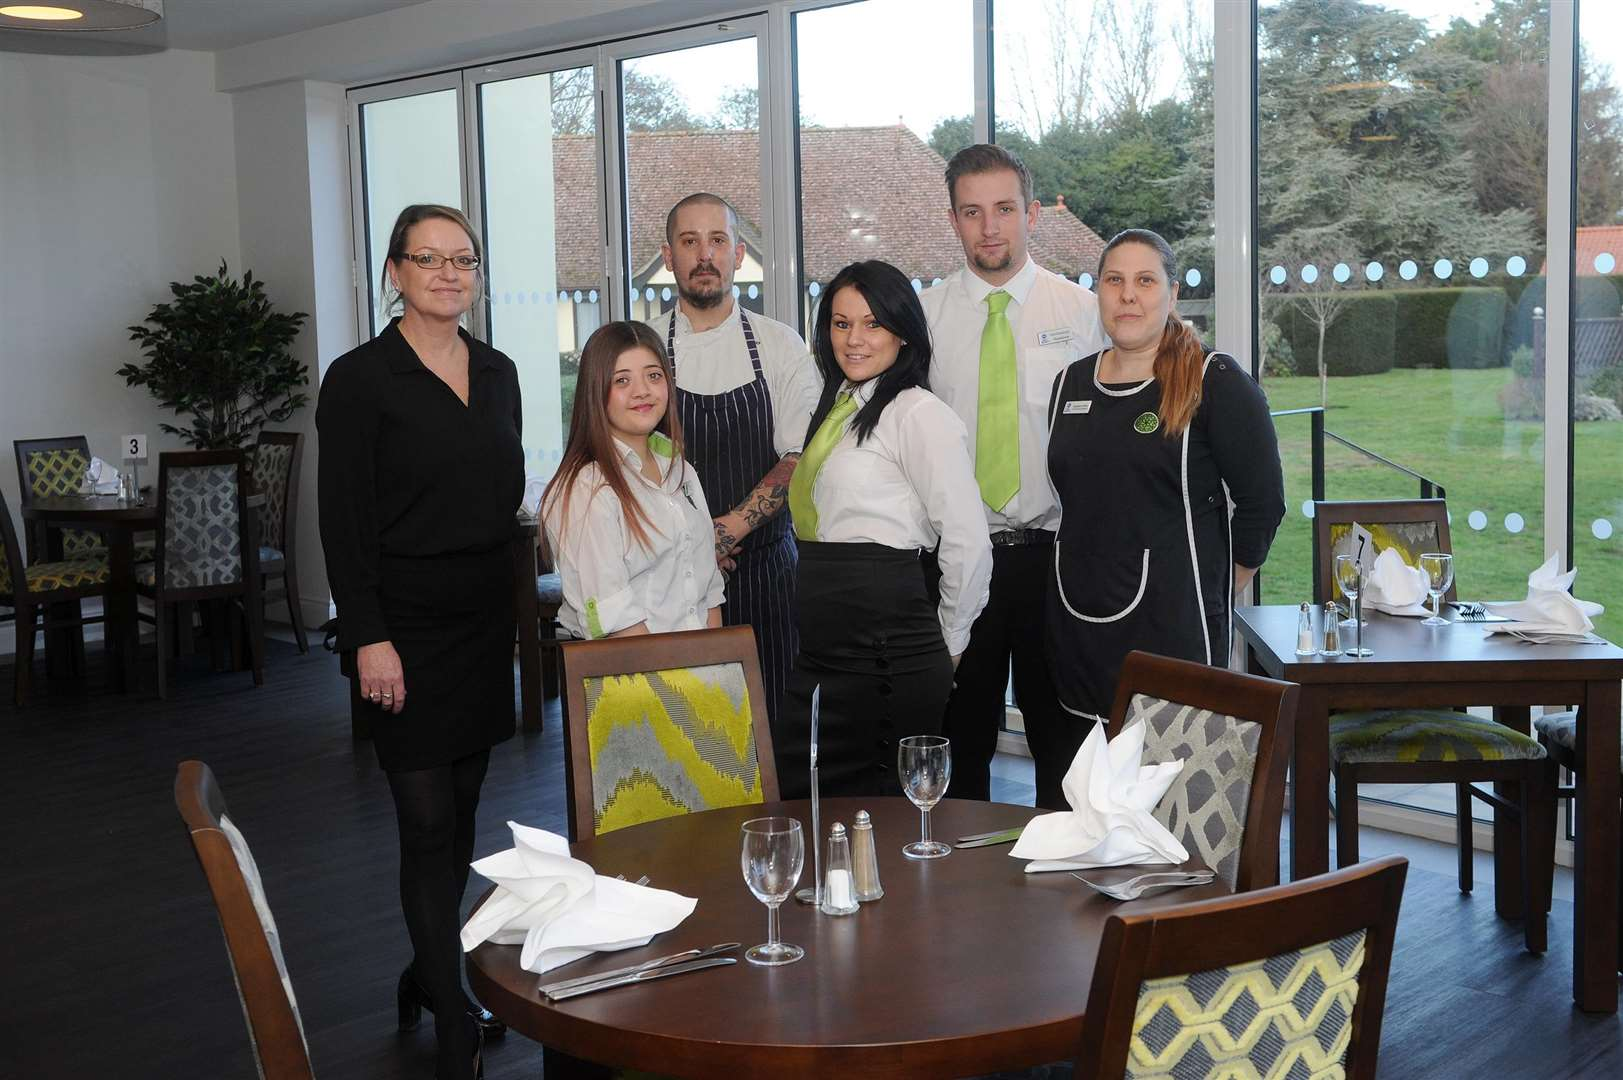 The Priory Hotel has opened an extension which houses a new bar, lounge and the garden restaurant...Pictured: Julie Campbell, Jade Callis, Carl Grimwood, Tracey Zdrenka, Russell Gibbons and Stephanie Hales...PICTURE: Mecha Morton... (6715109)